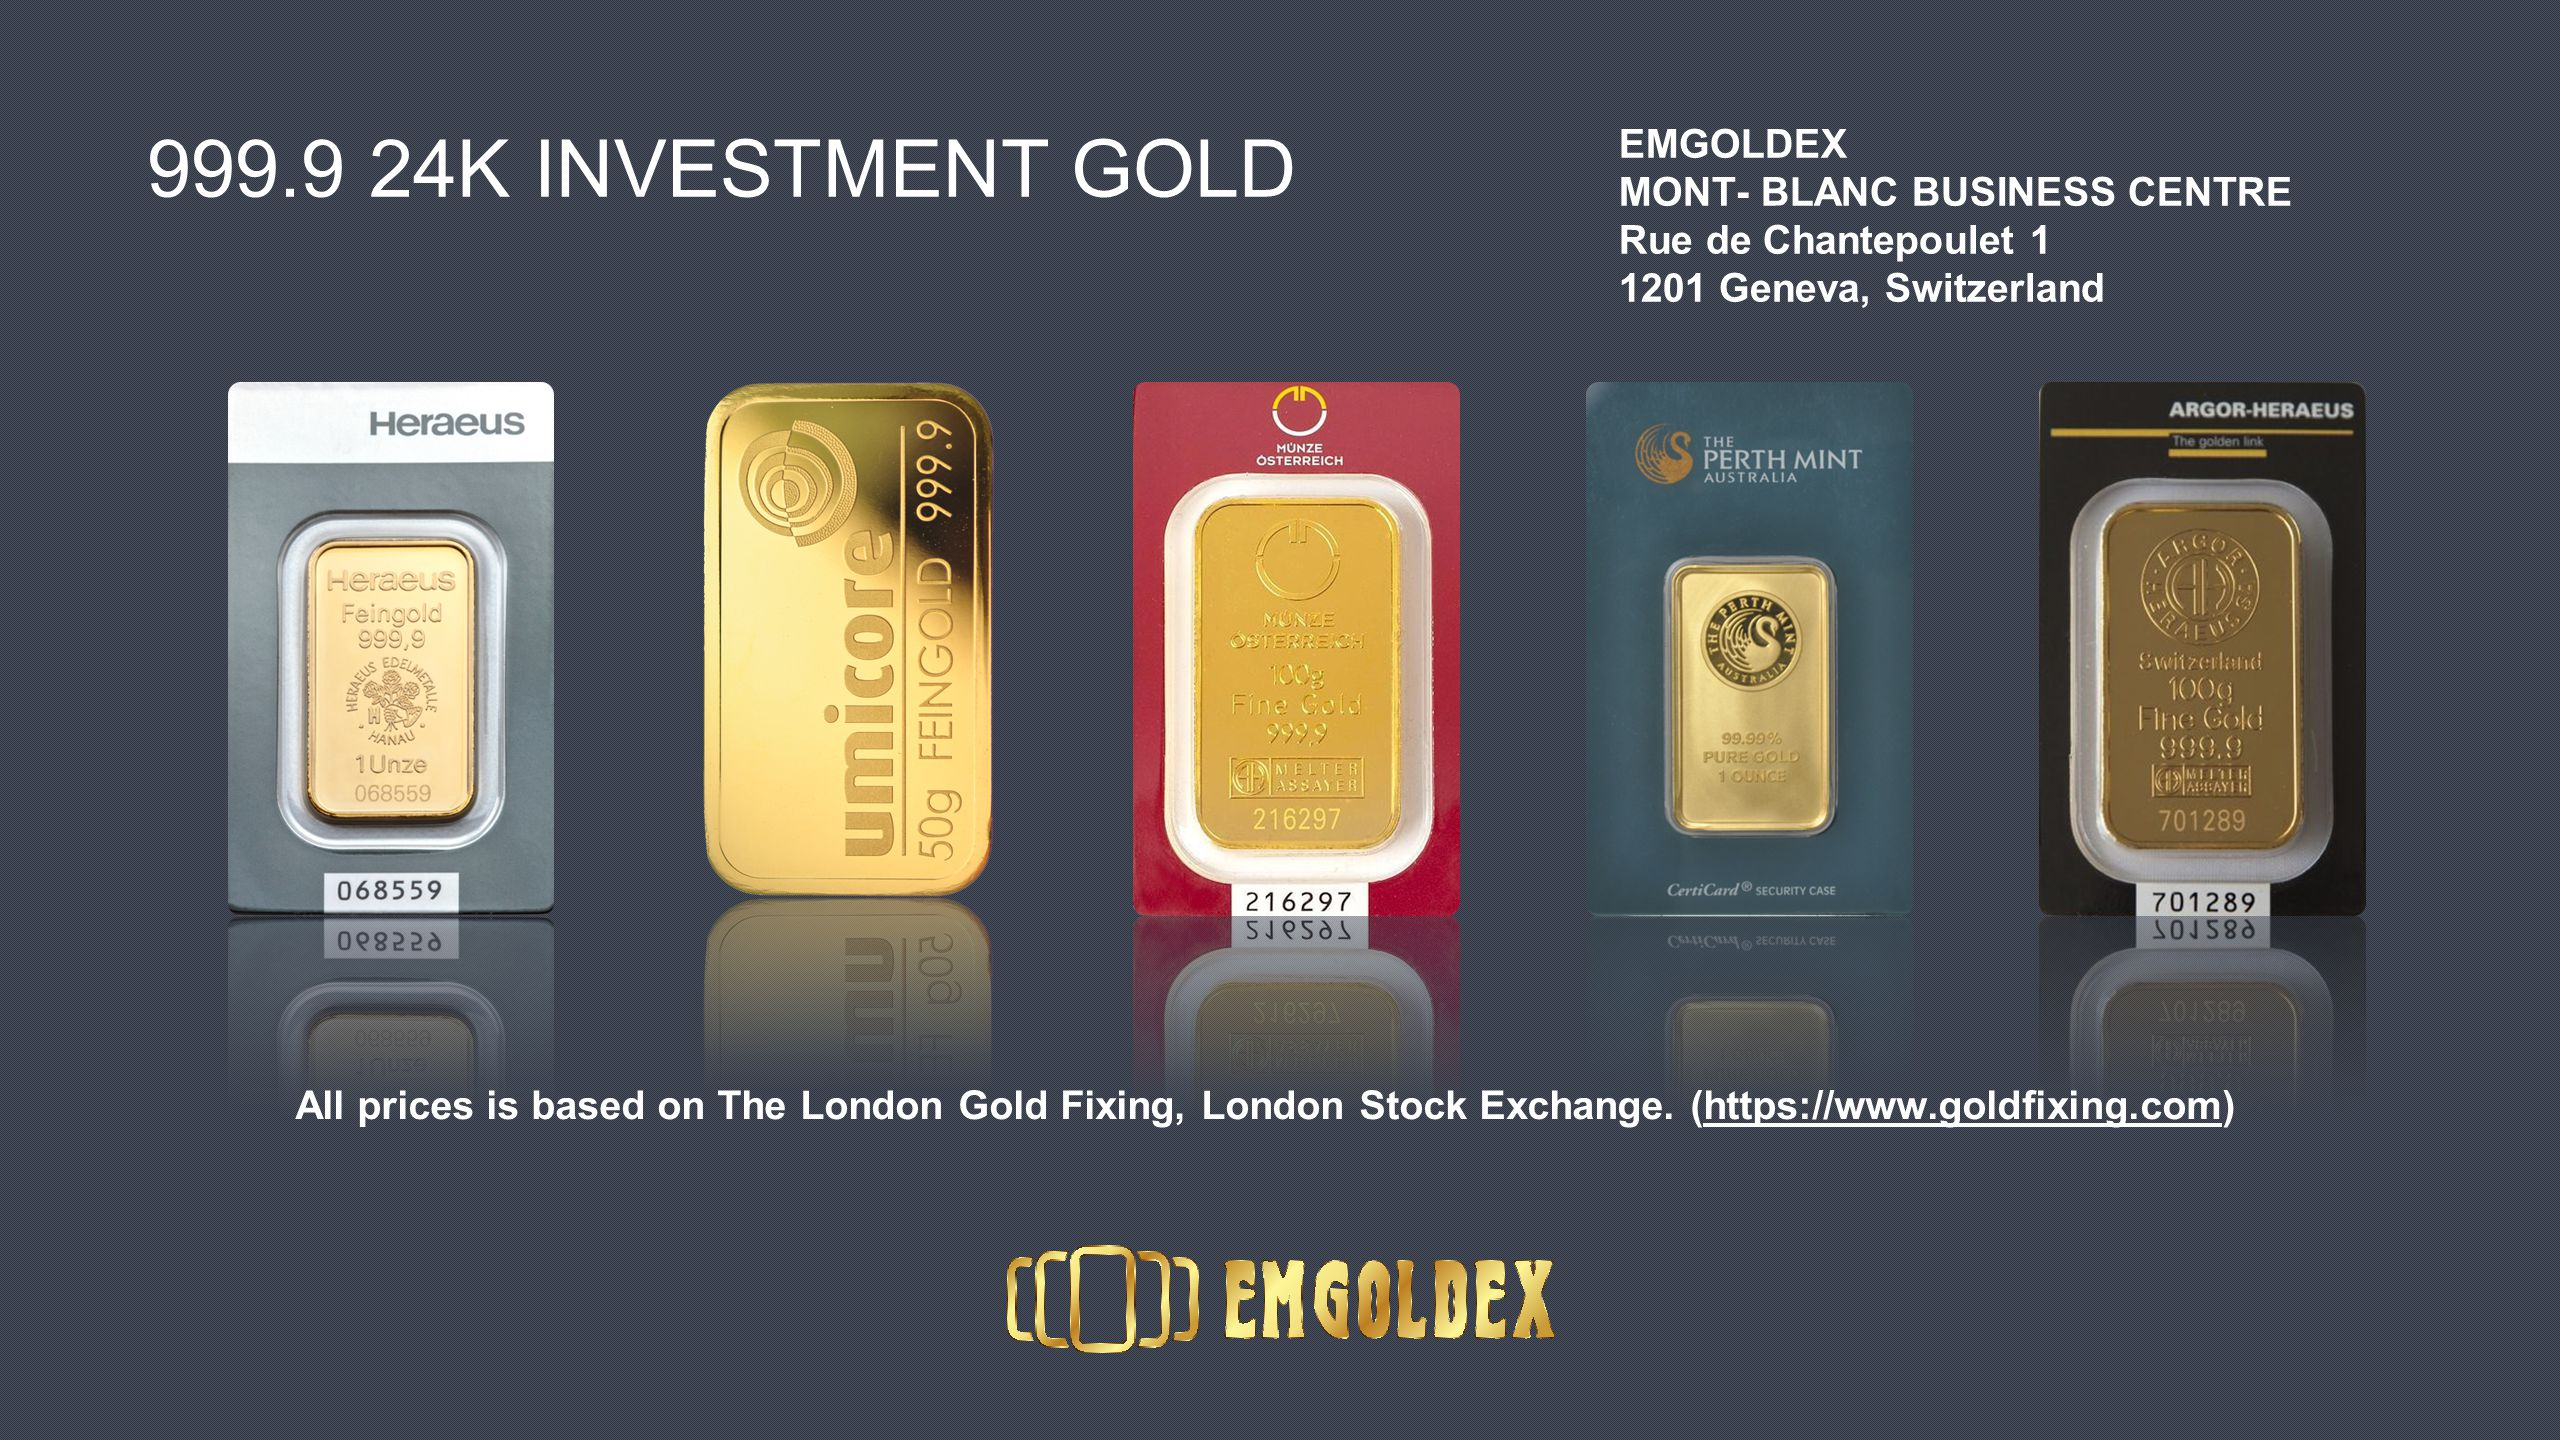 999.9 24K INVESTMENT GOLD All prices is based on The London Gold Fixing, London Stock Exchange.